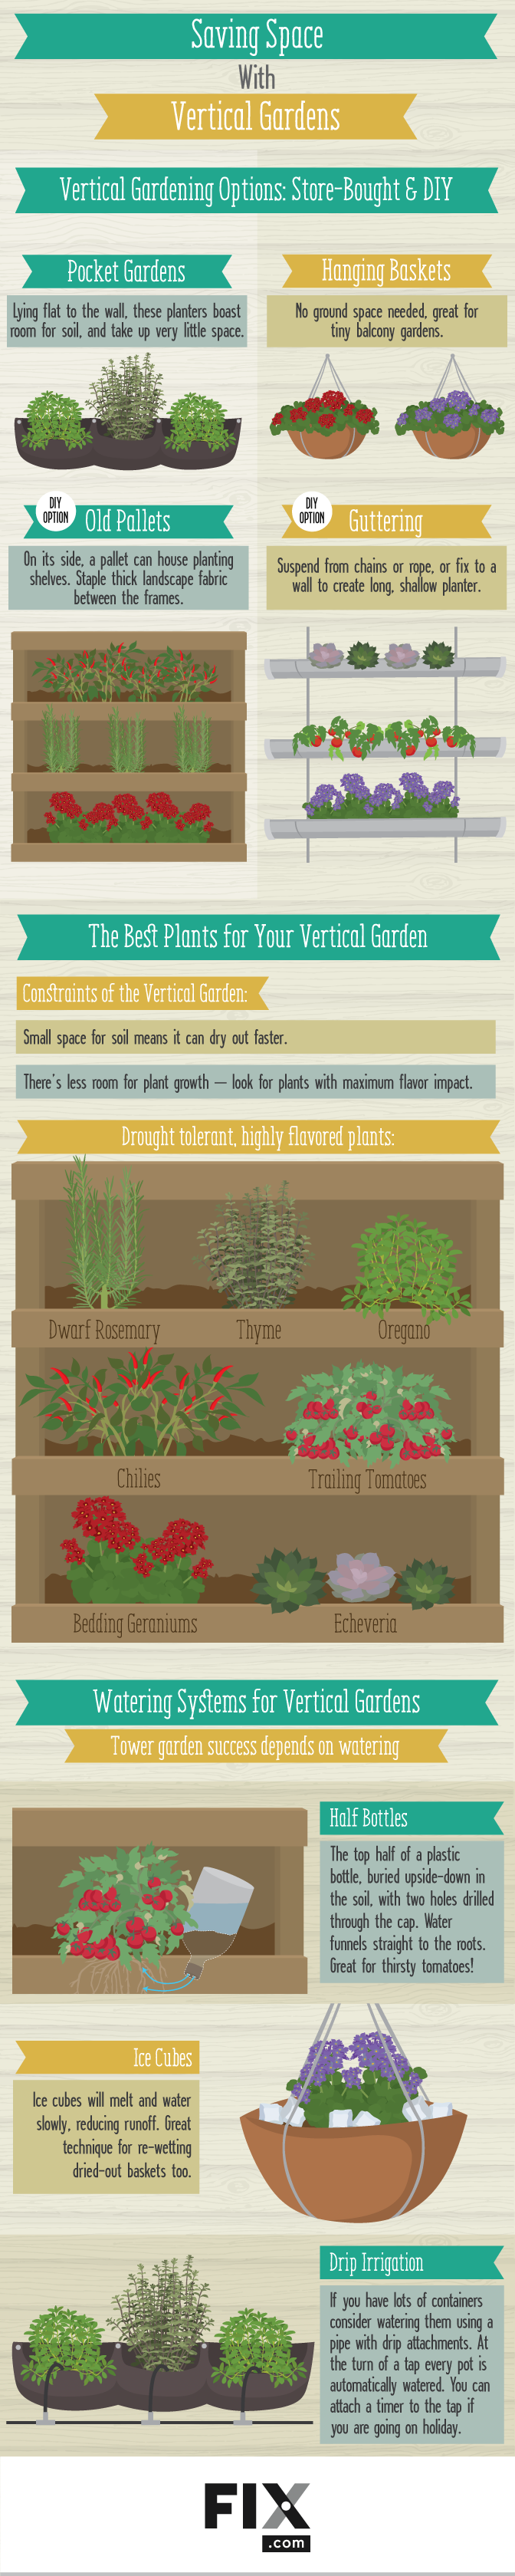 Saving Space With Vertical Gardens #infographic